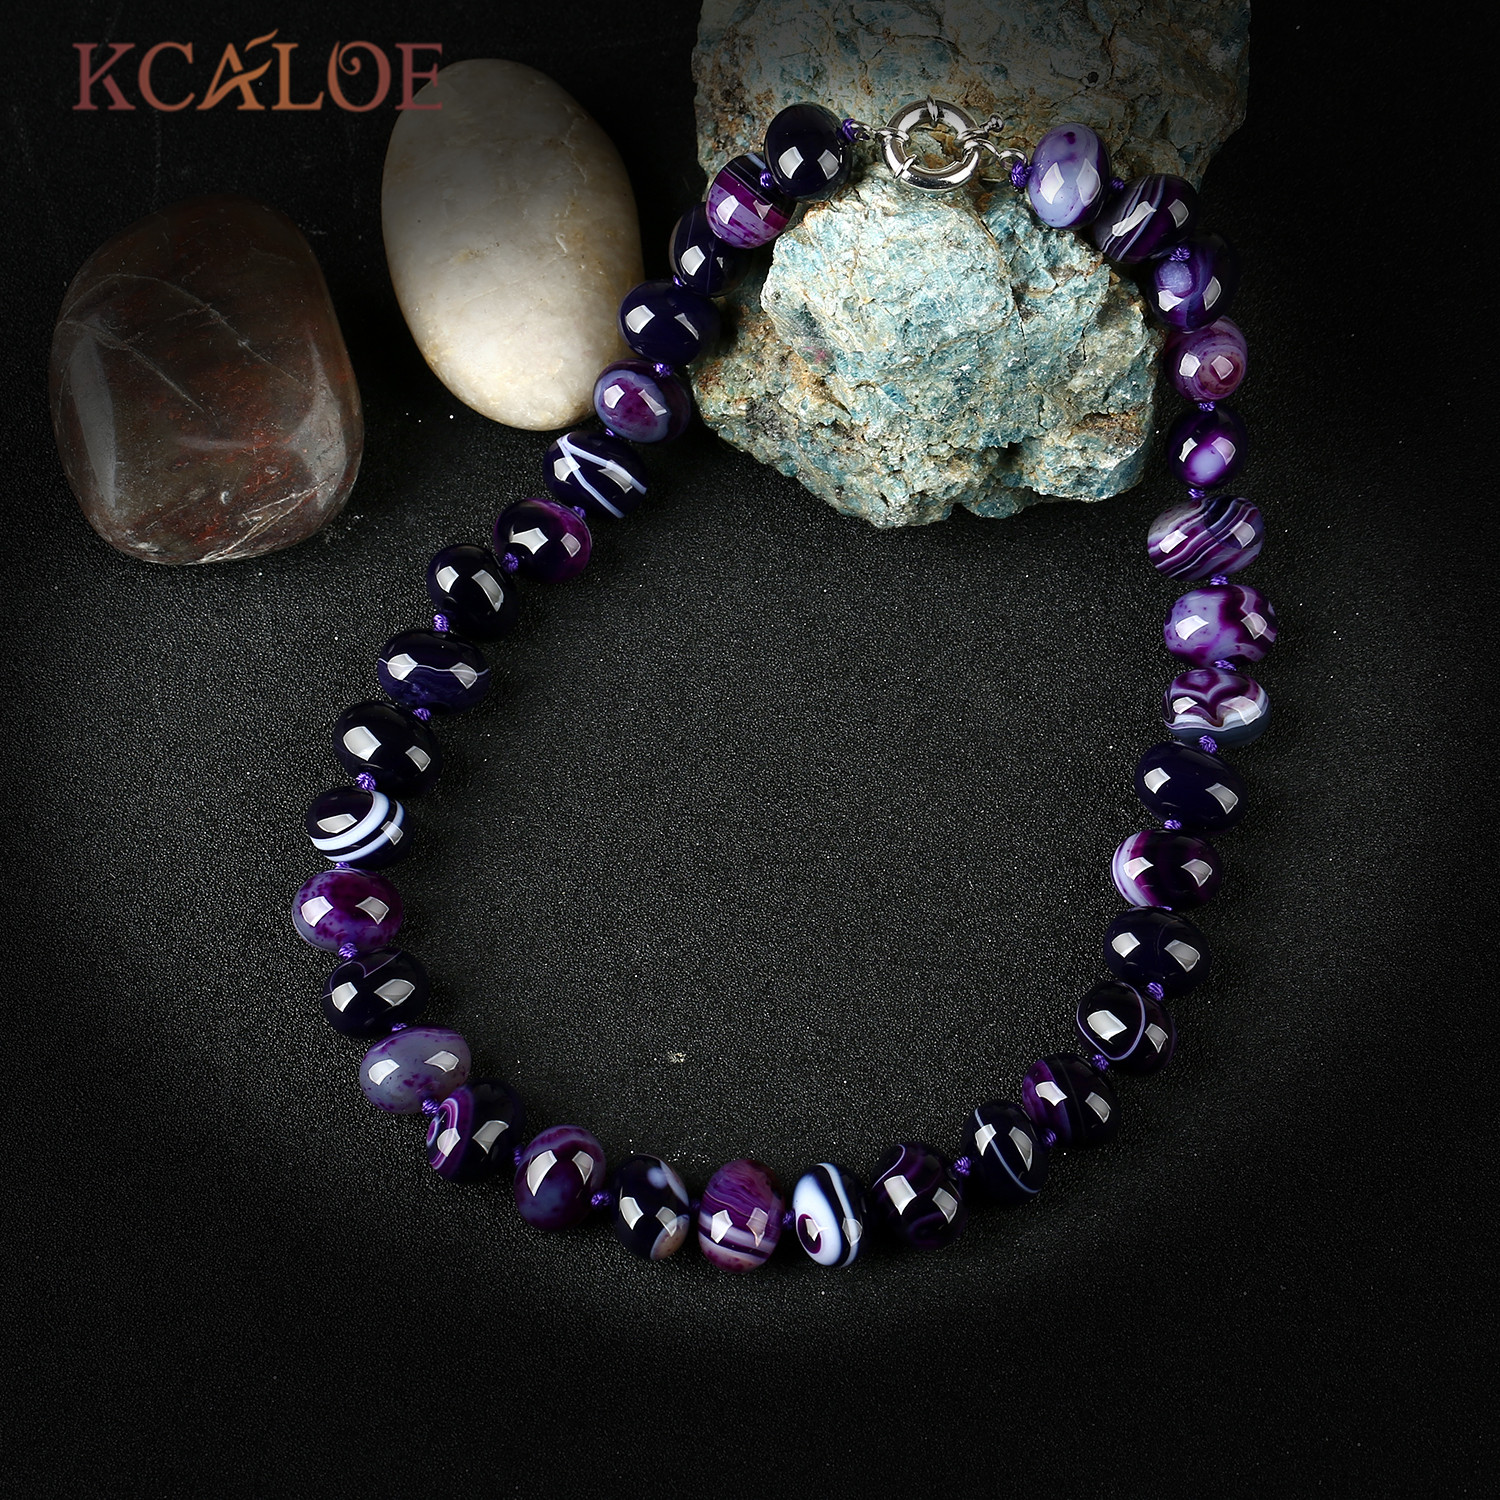 KCALOE Natural Purple Banded Agat Necklace For Women Oval Beads Onyx Stone Choker Necklaces Jewerly Collier Ras Du Cou